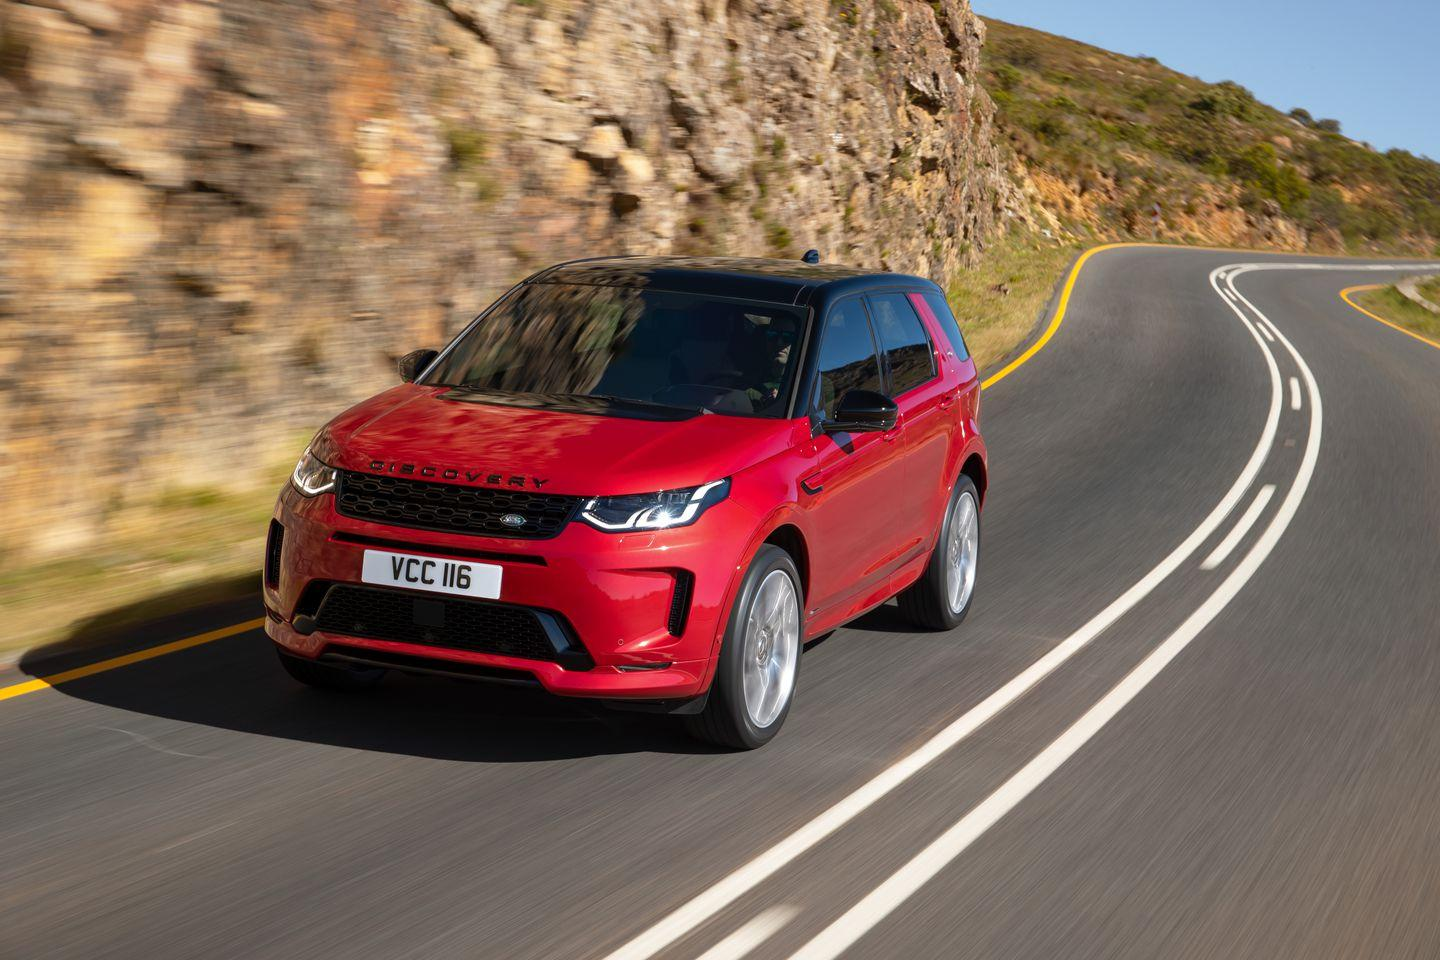 2020 Land Rover Discovery Is Built On The New Architecture >> View Photos Of The 2020 Land Rover Discovery Sport